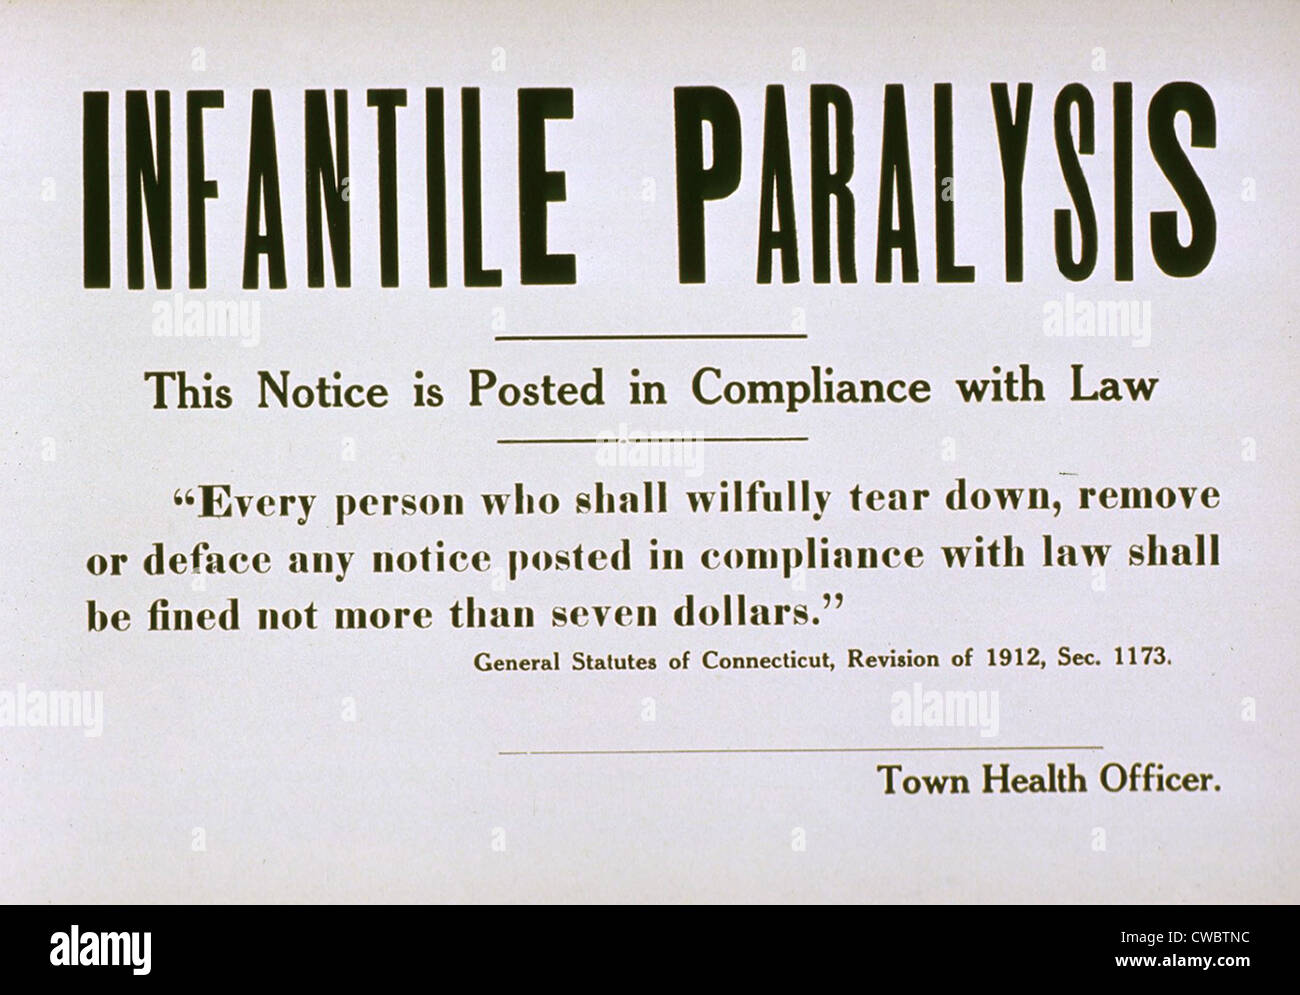 Early 20th century quarantine sign for the contagious disease infantile paralysis (polio). - Stock Image